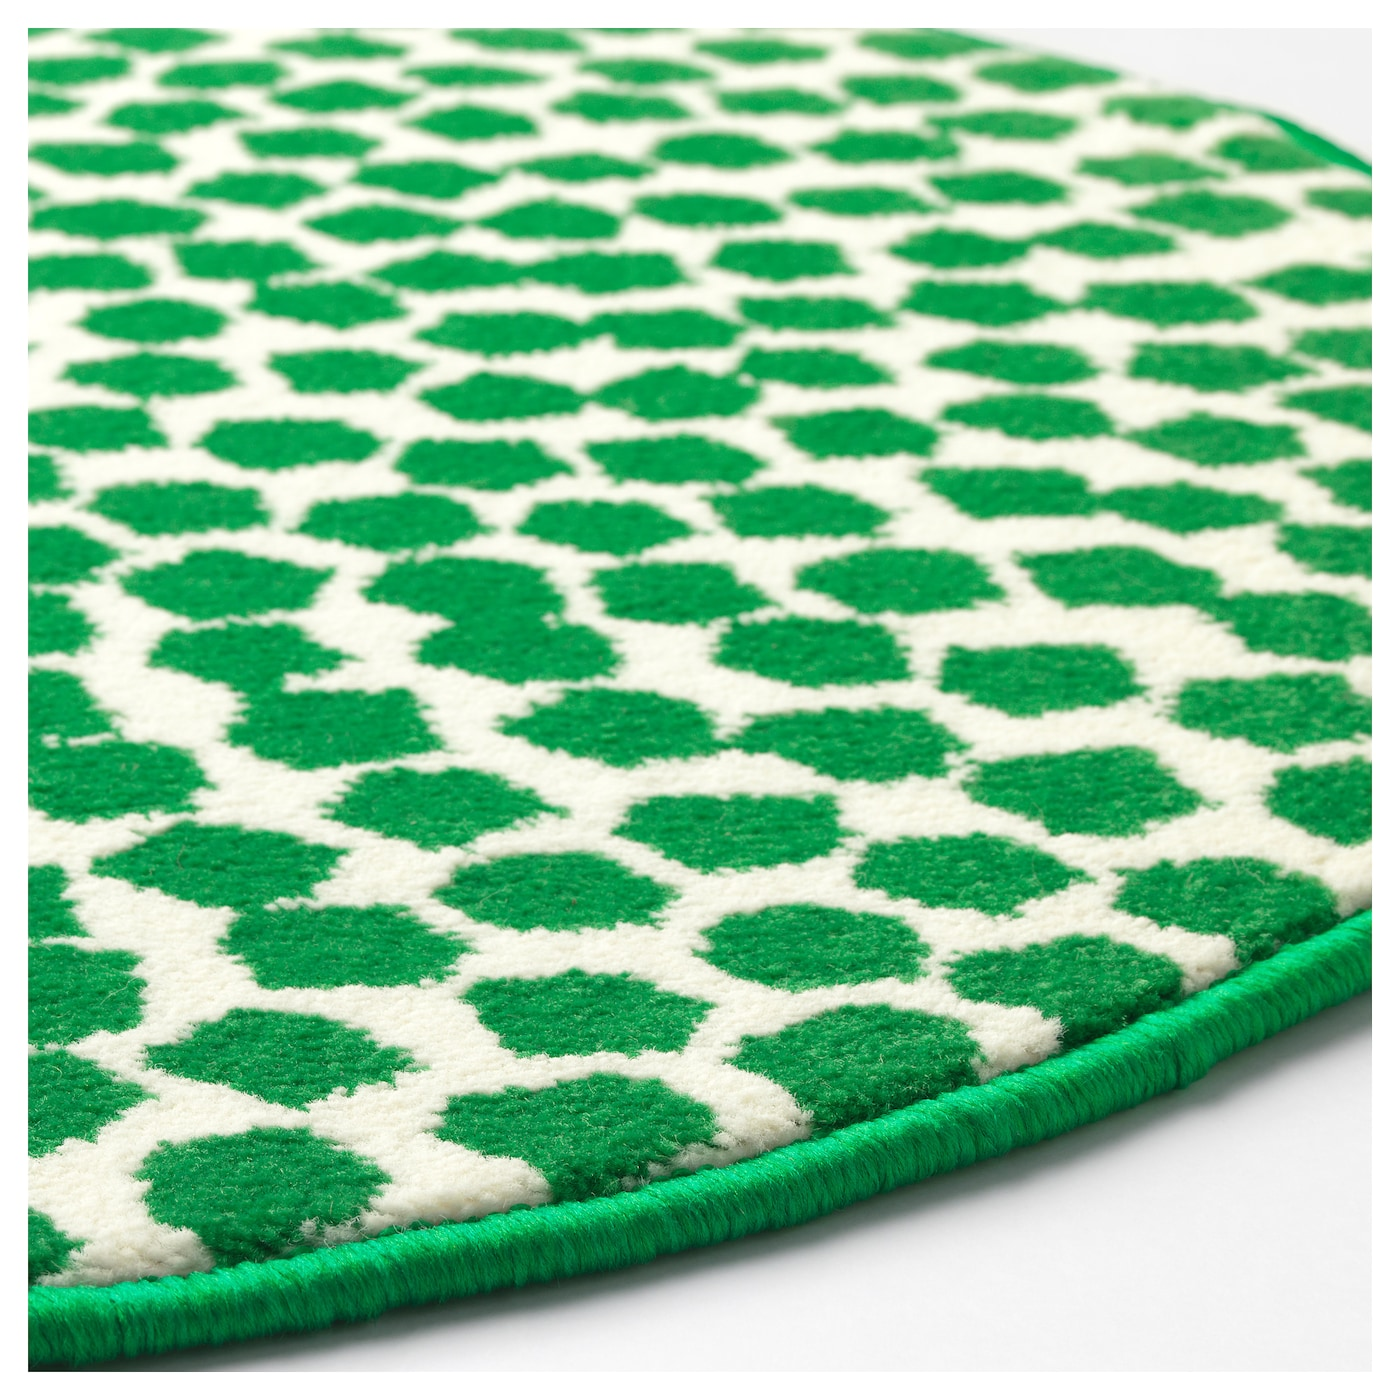 Fl ng rug low pile white green 80 cm ikea for Ikea rugs